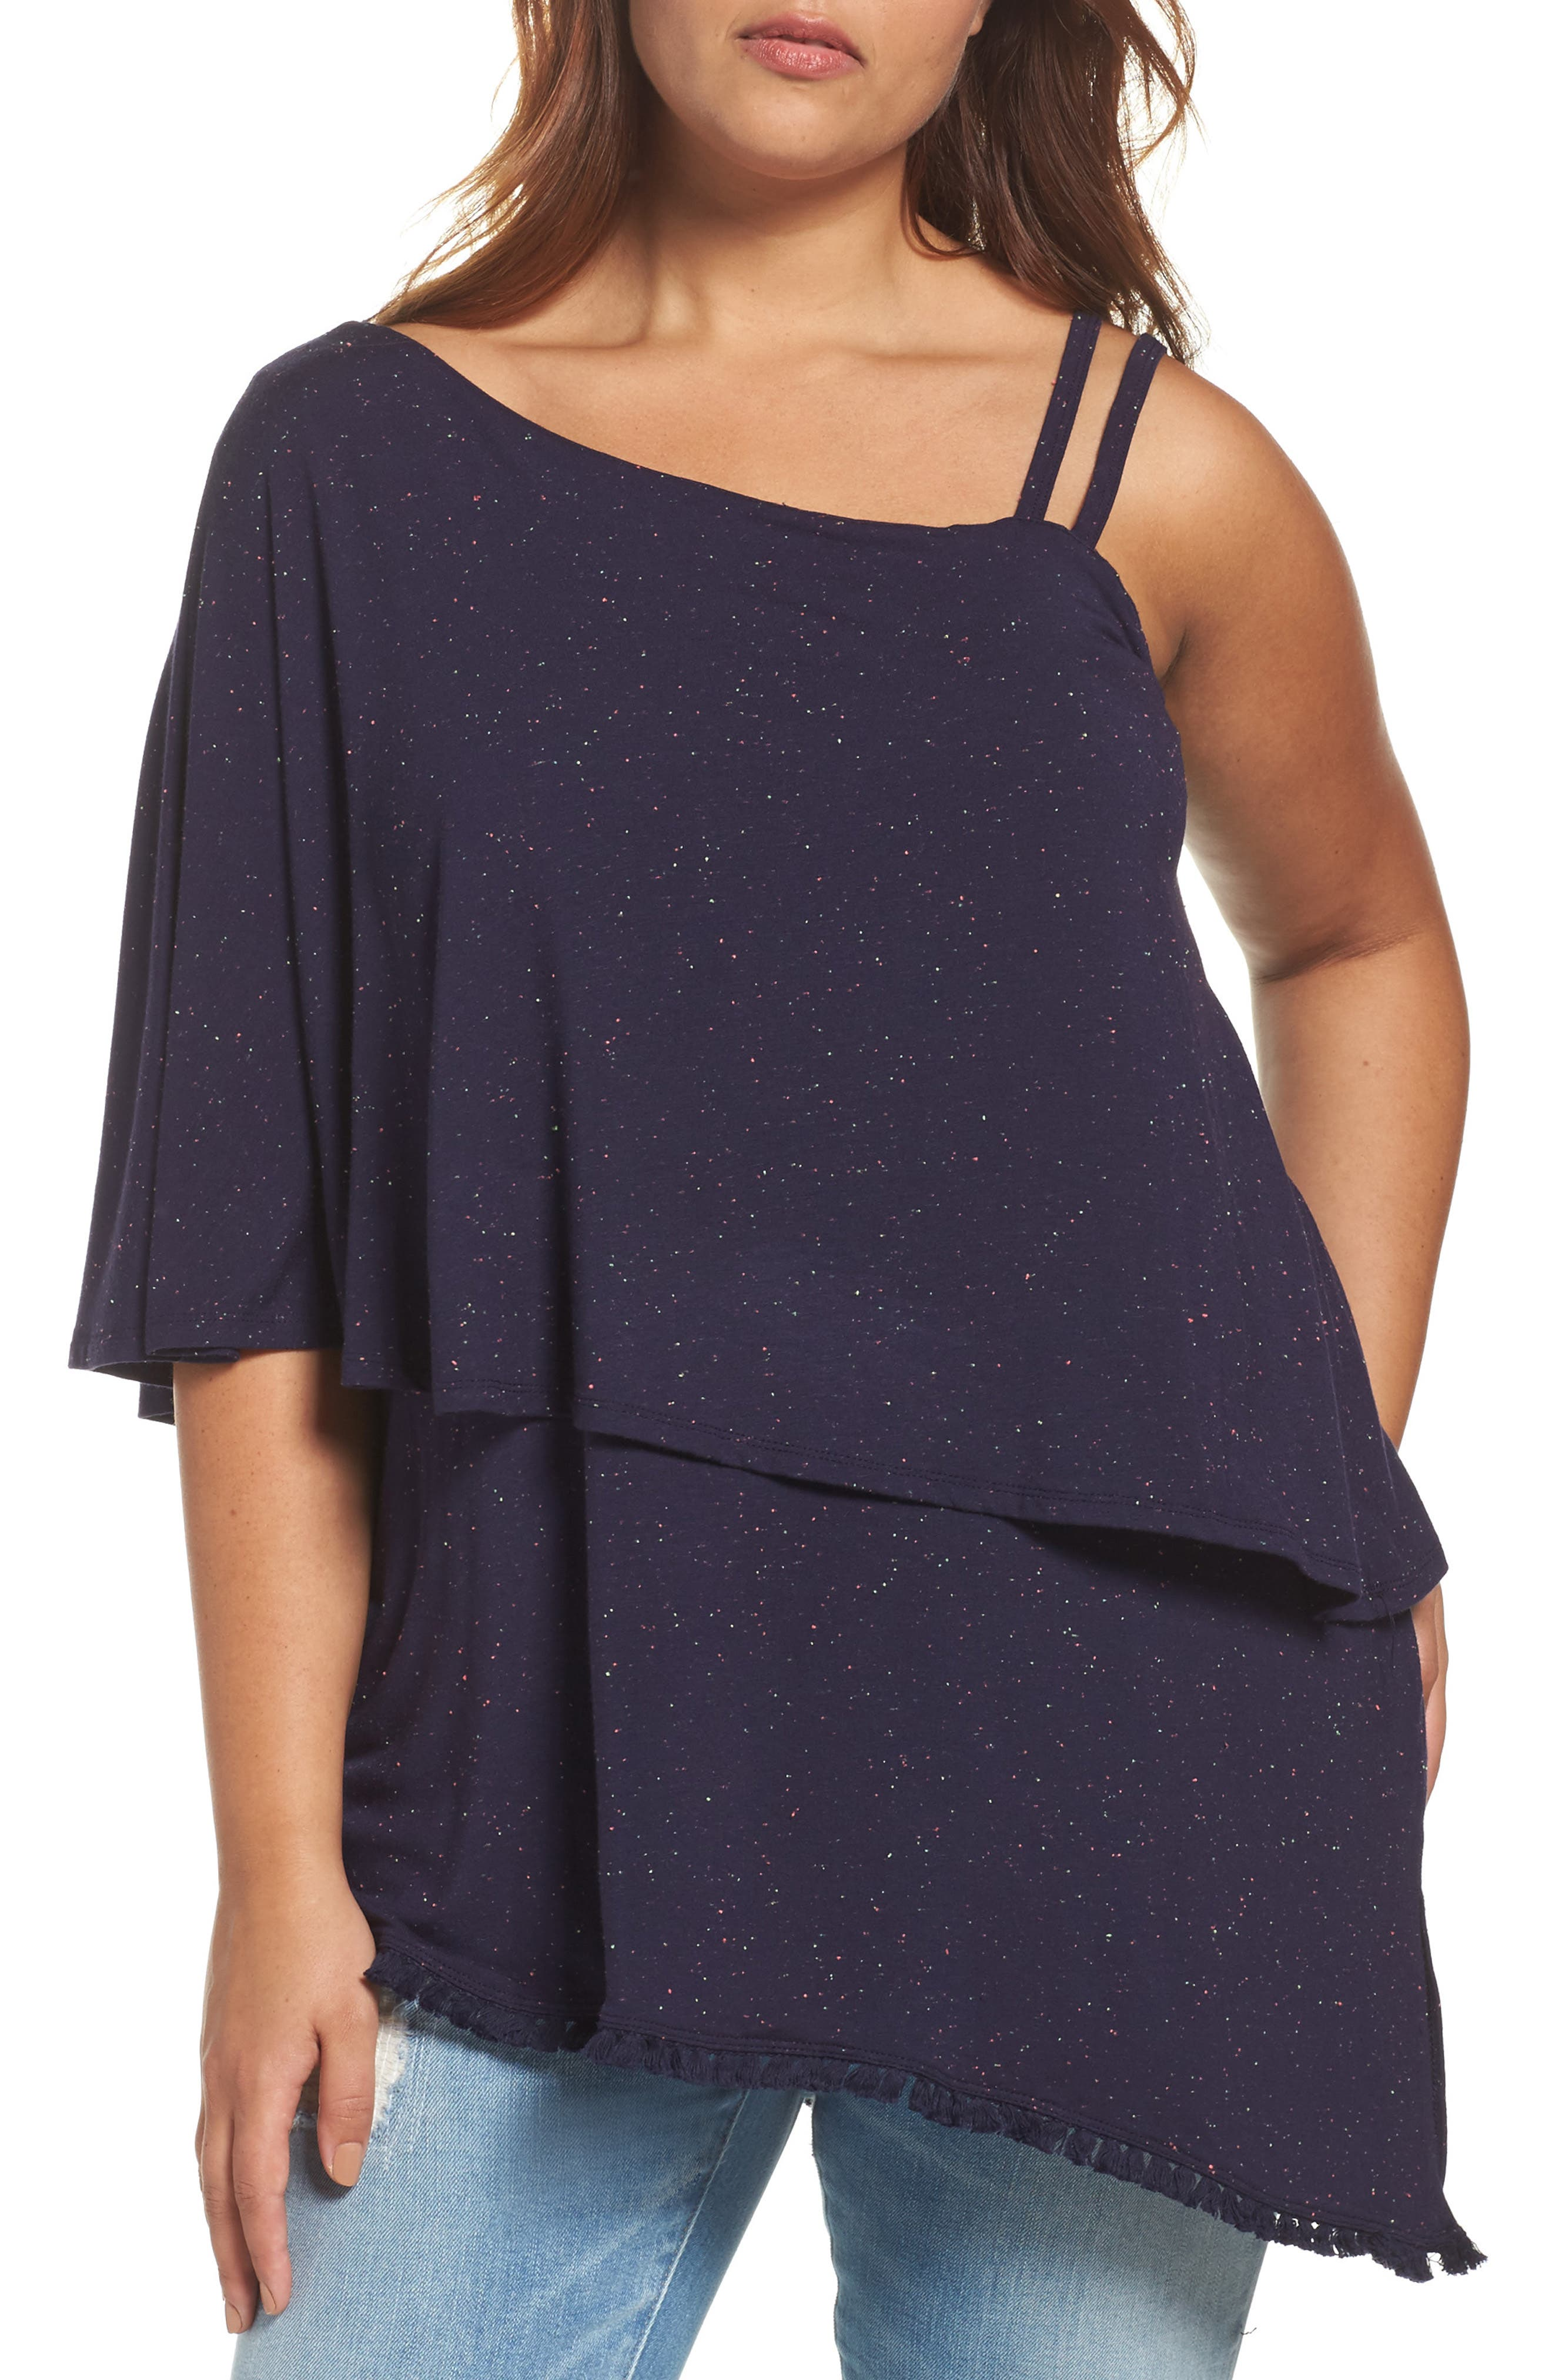 Alternate Image 1 Selected - Wit & Wisdom One-Shoulder Ruffle Asymmetrical Top (Plus Size) (Nordstrom Exclusive)